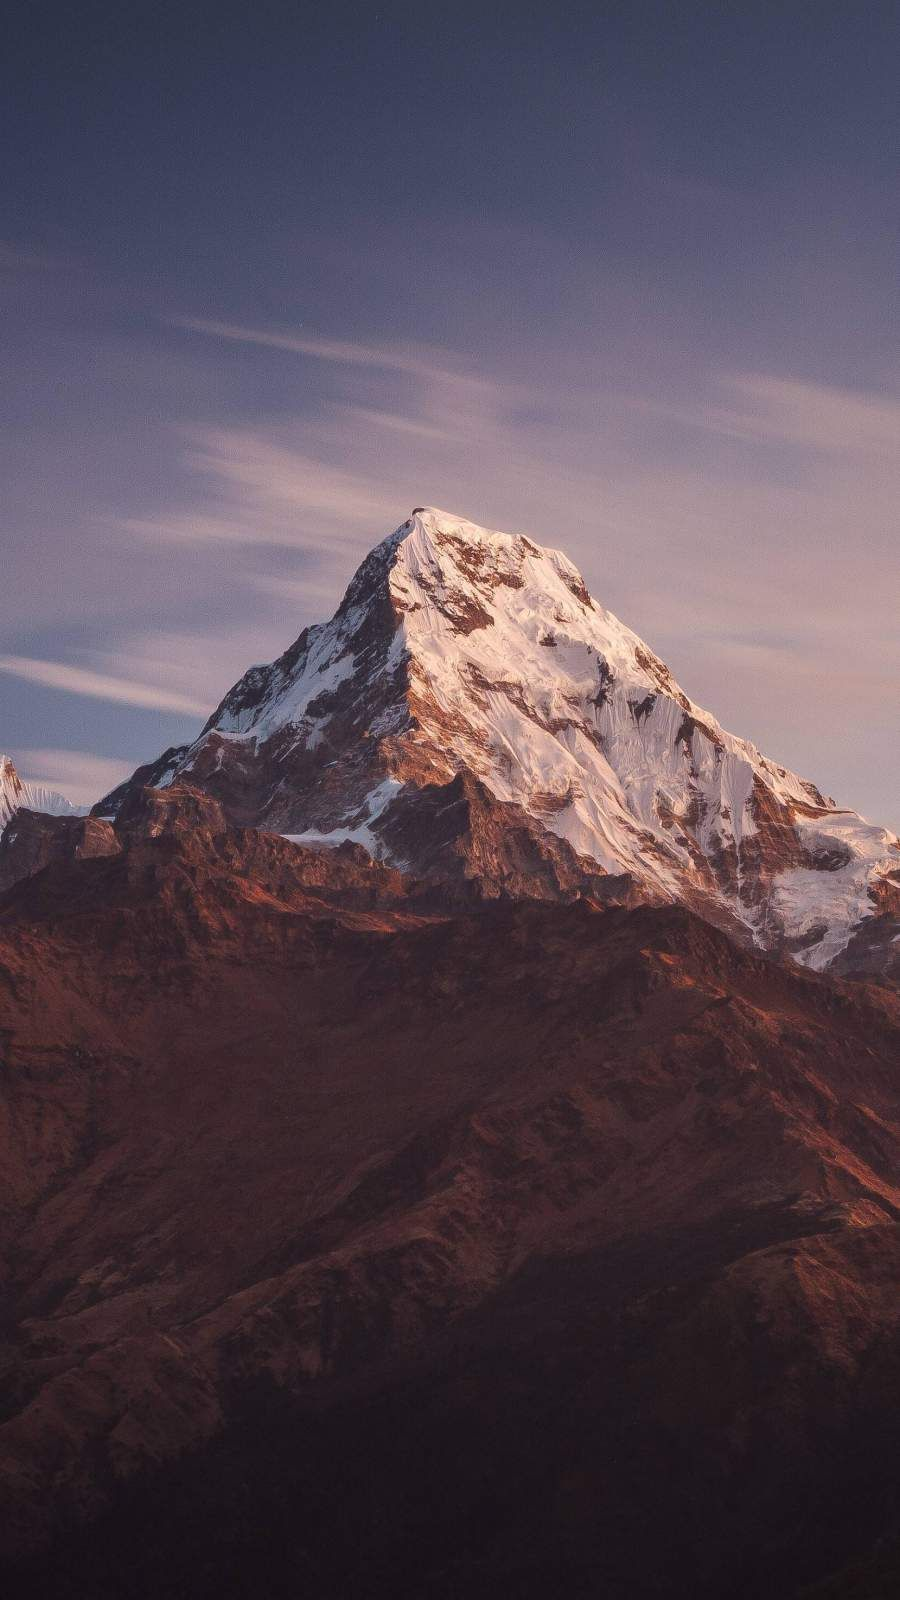 Snow Mountain Nature iPhone Wallpaper - iPhone Wallpapers